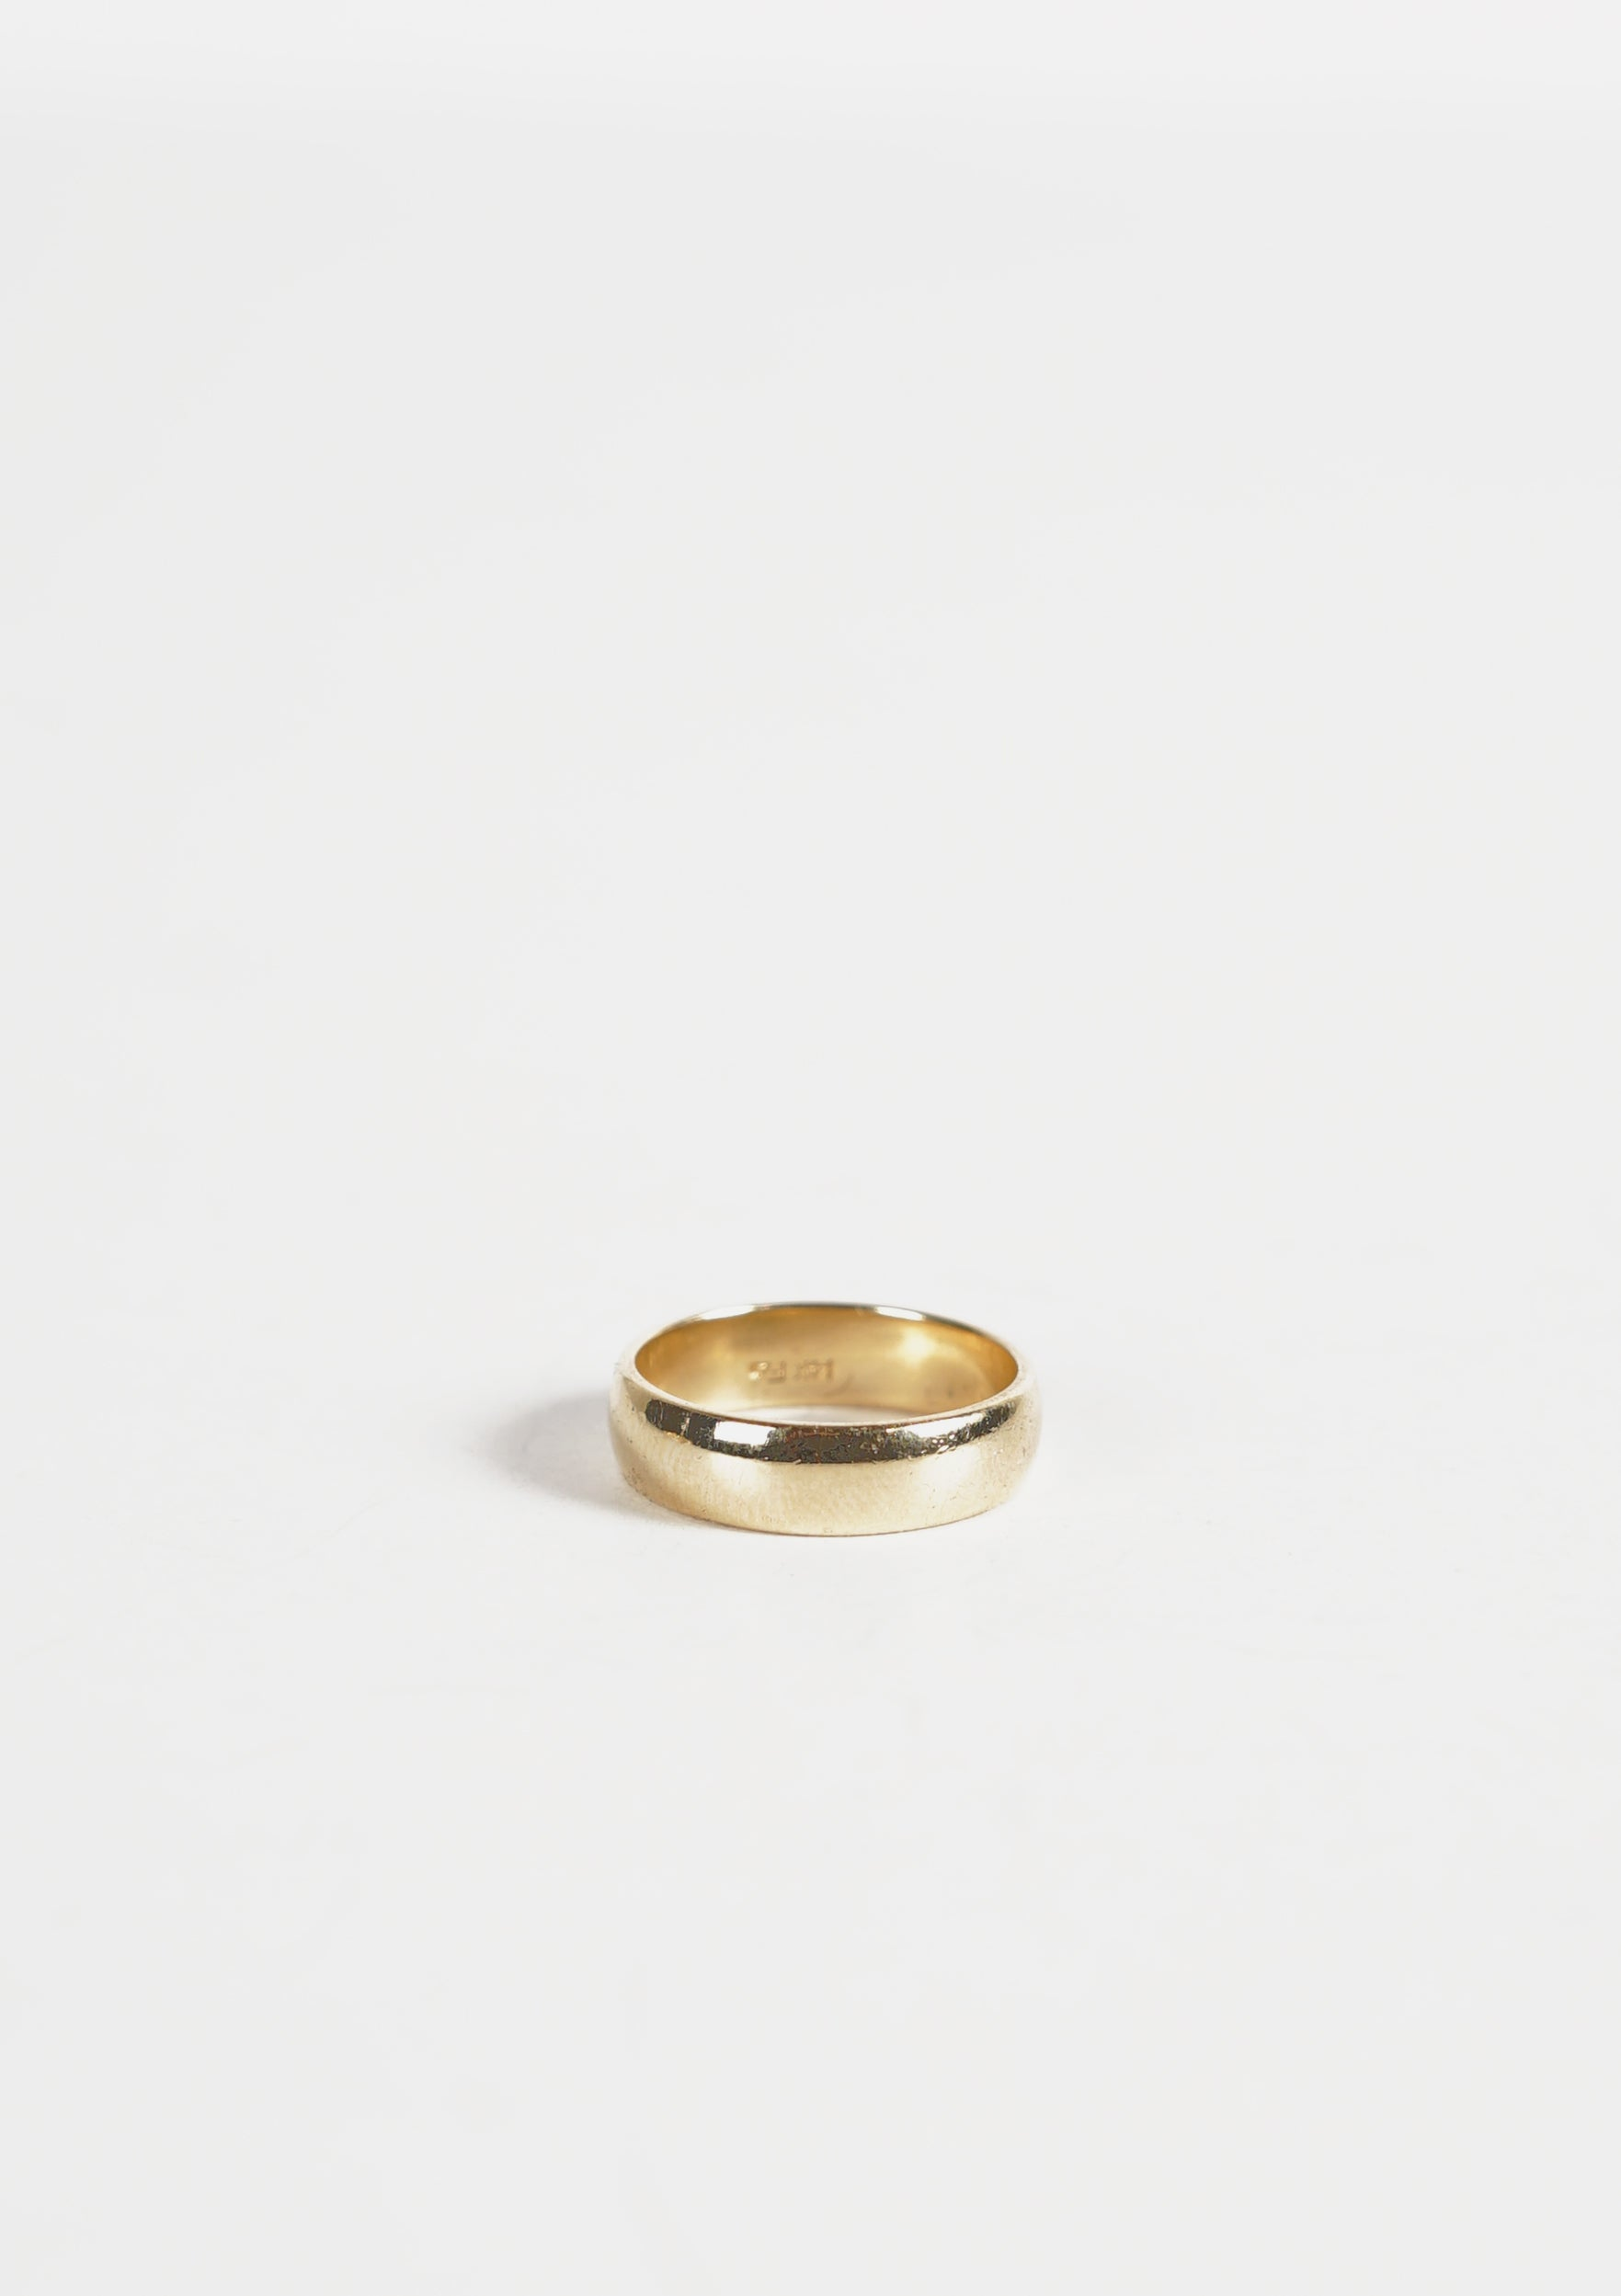 <strong>VINTAGE</strong></br>14k Gold Round Band Ring / 5mm